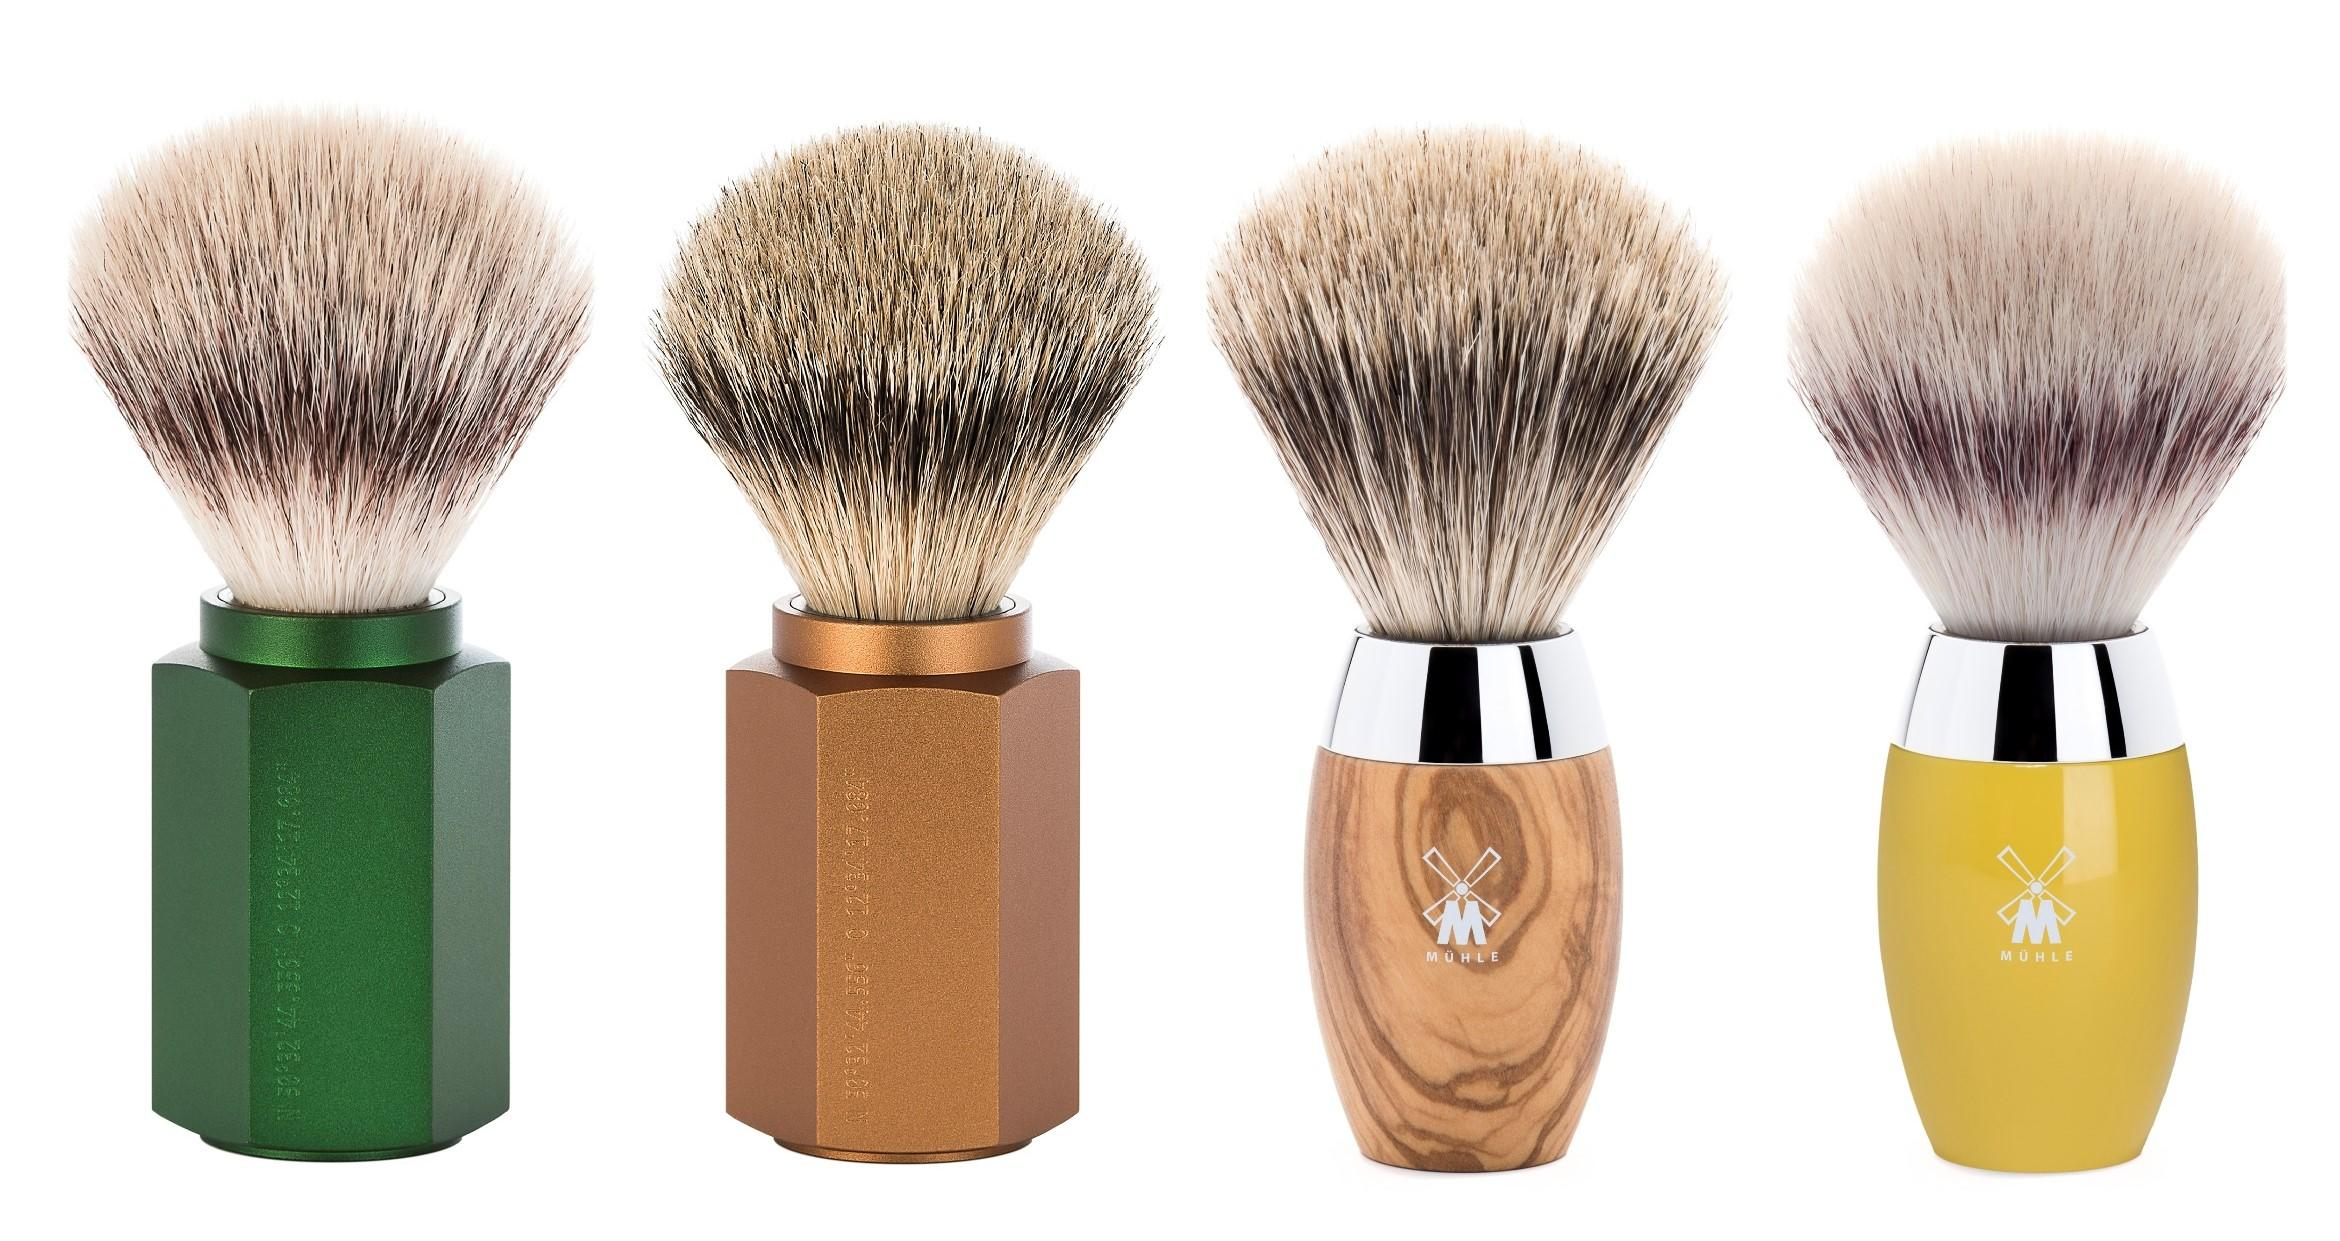 (from left to right): The Forest HEXAGON Silvertip Fibre Shaving Brush (31MHXGFOREST), The Bronze HEXAGON Silvertip Badger Shaving Brush (091MHXGBRONZE), The Olive Wood KOSMO Fine Badger Shaving Brush (281H870), The Citrine KOSMO Silvertip Fibre Shaving Brush (31K874),